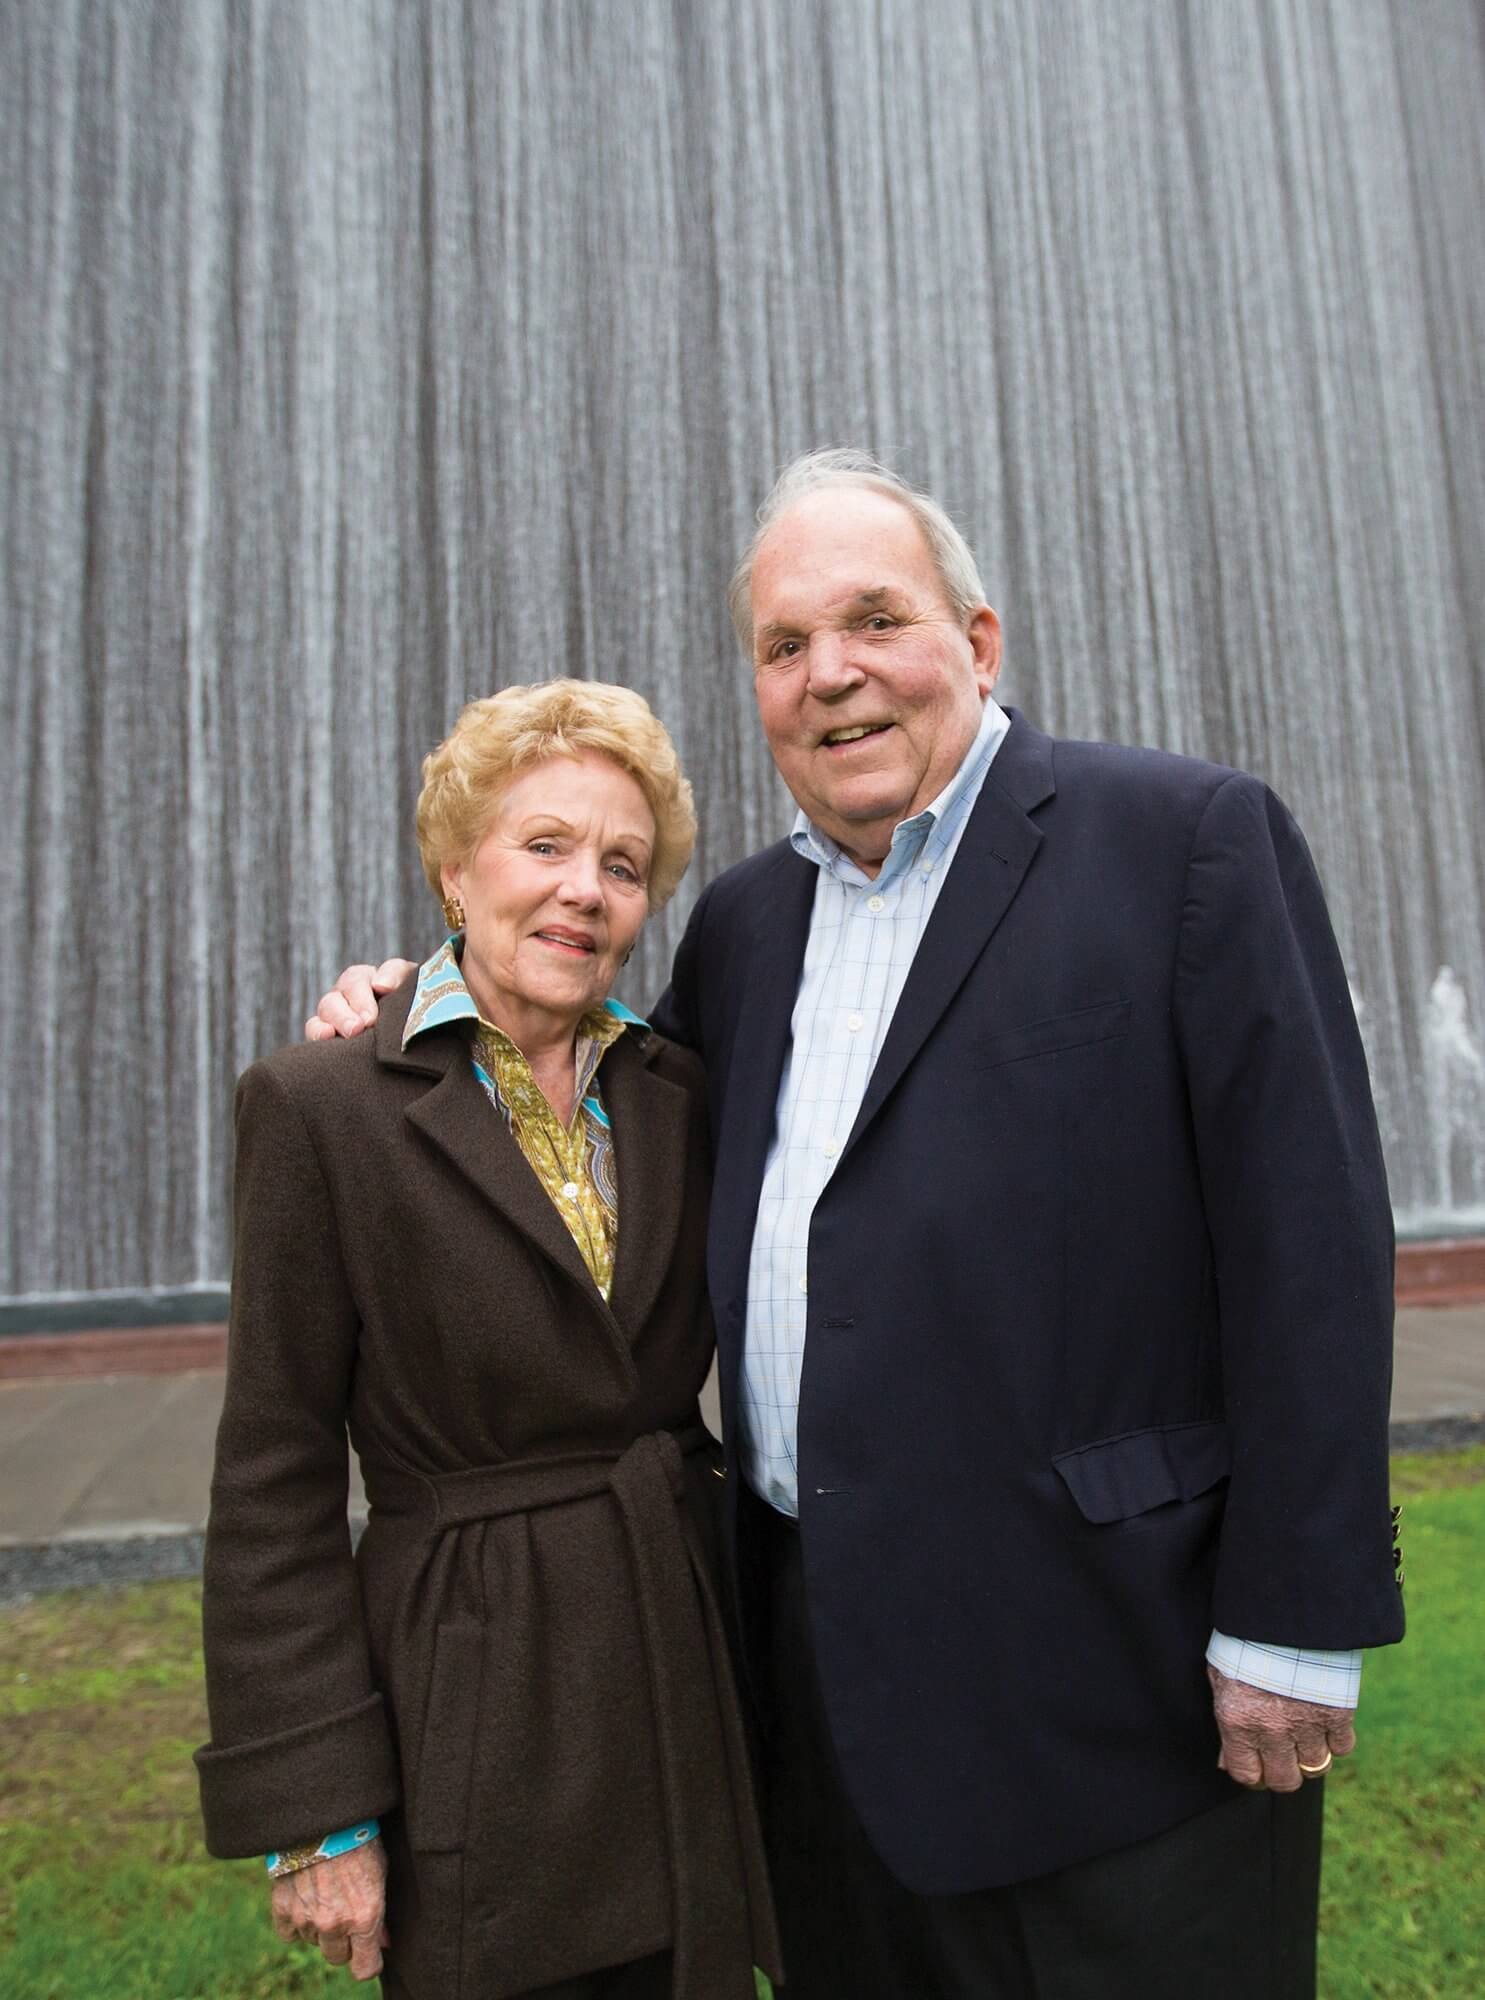 Emily and Holcombe Crosswell have been married for more than 50 years. Holcombe Crosswell is chairman of the board of directors of the Texas Medical Center.